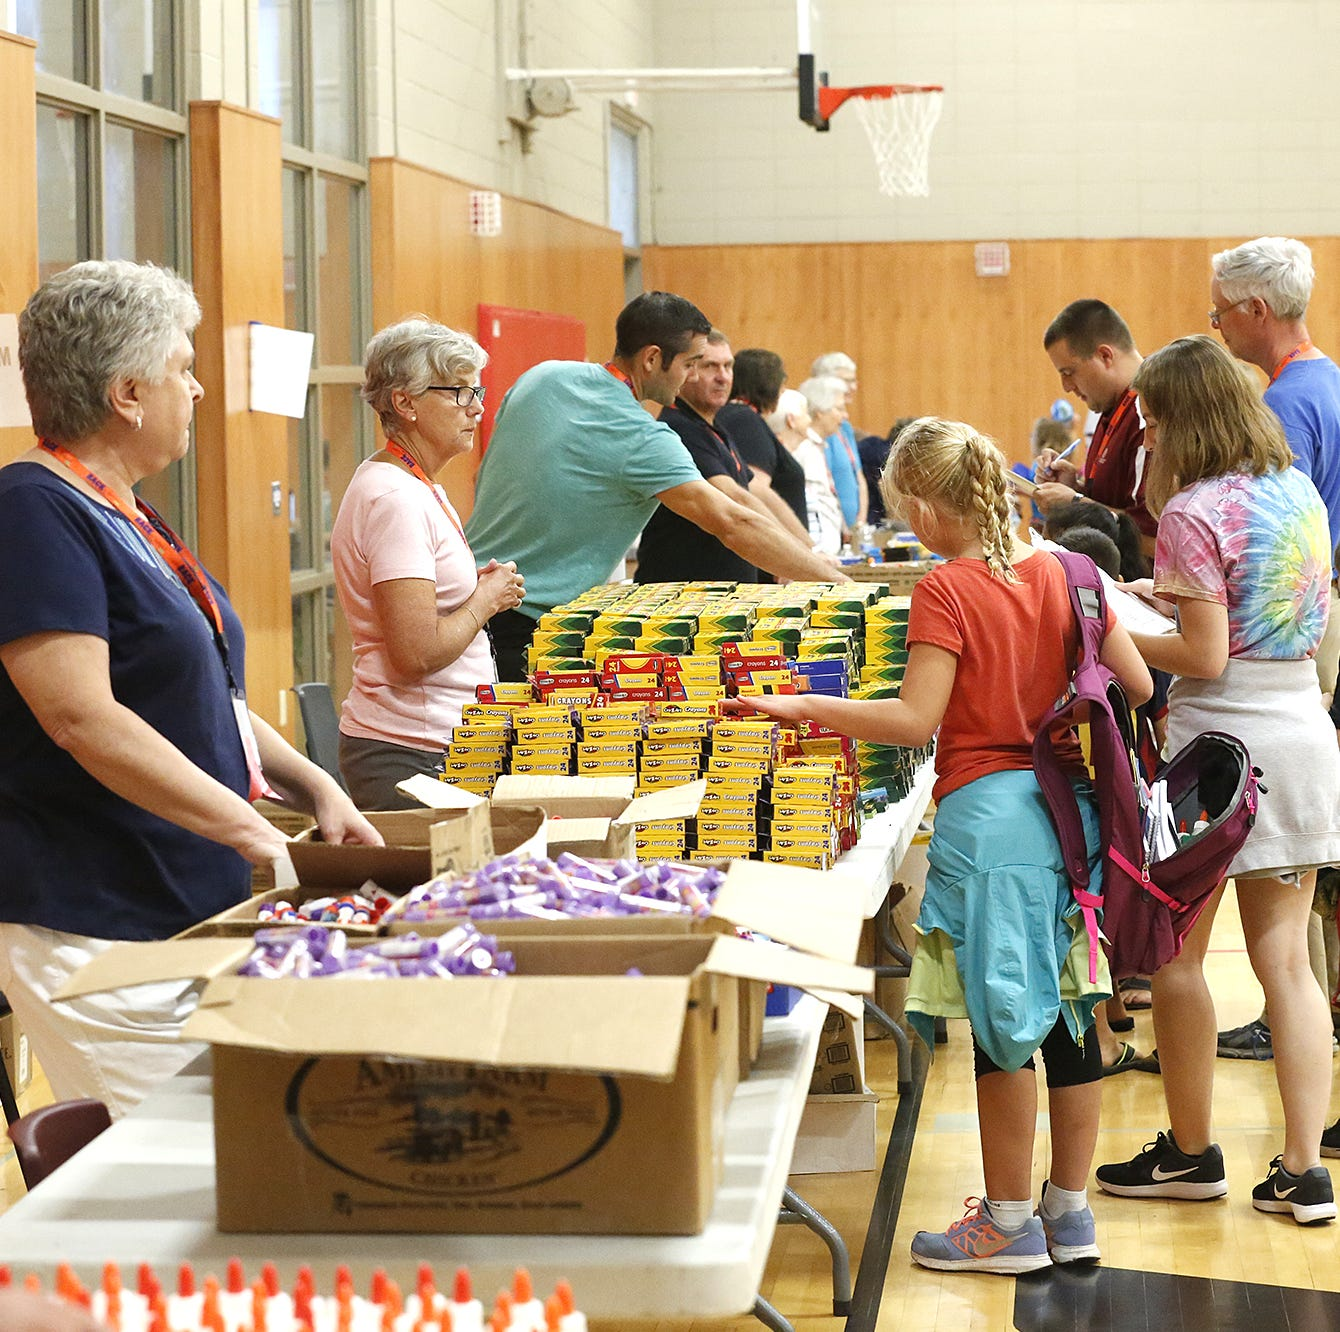 March floods damaged about 1,000 school supplies. FDL's Back to School program needs help